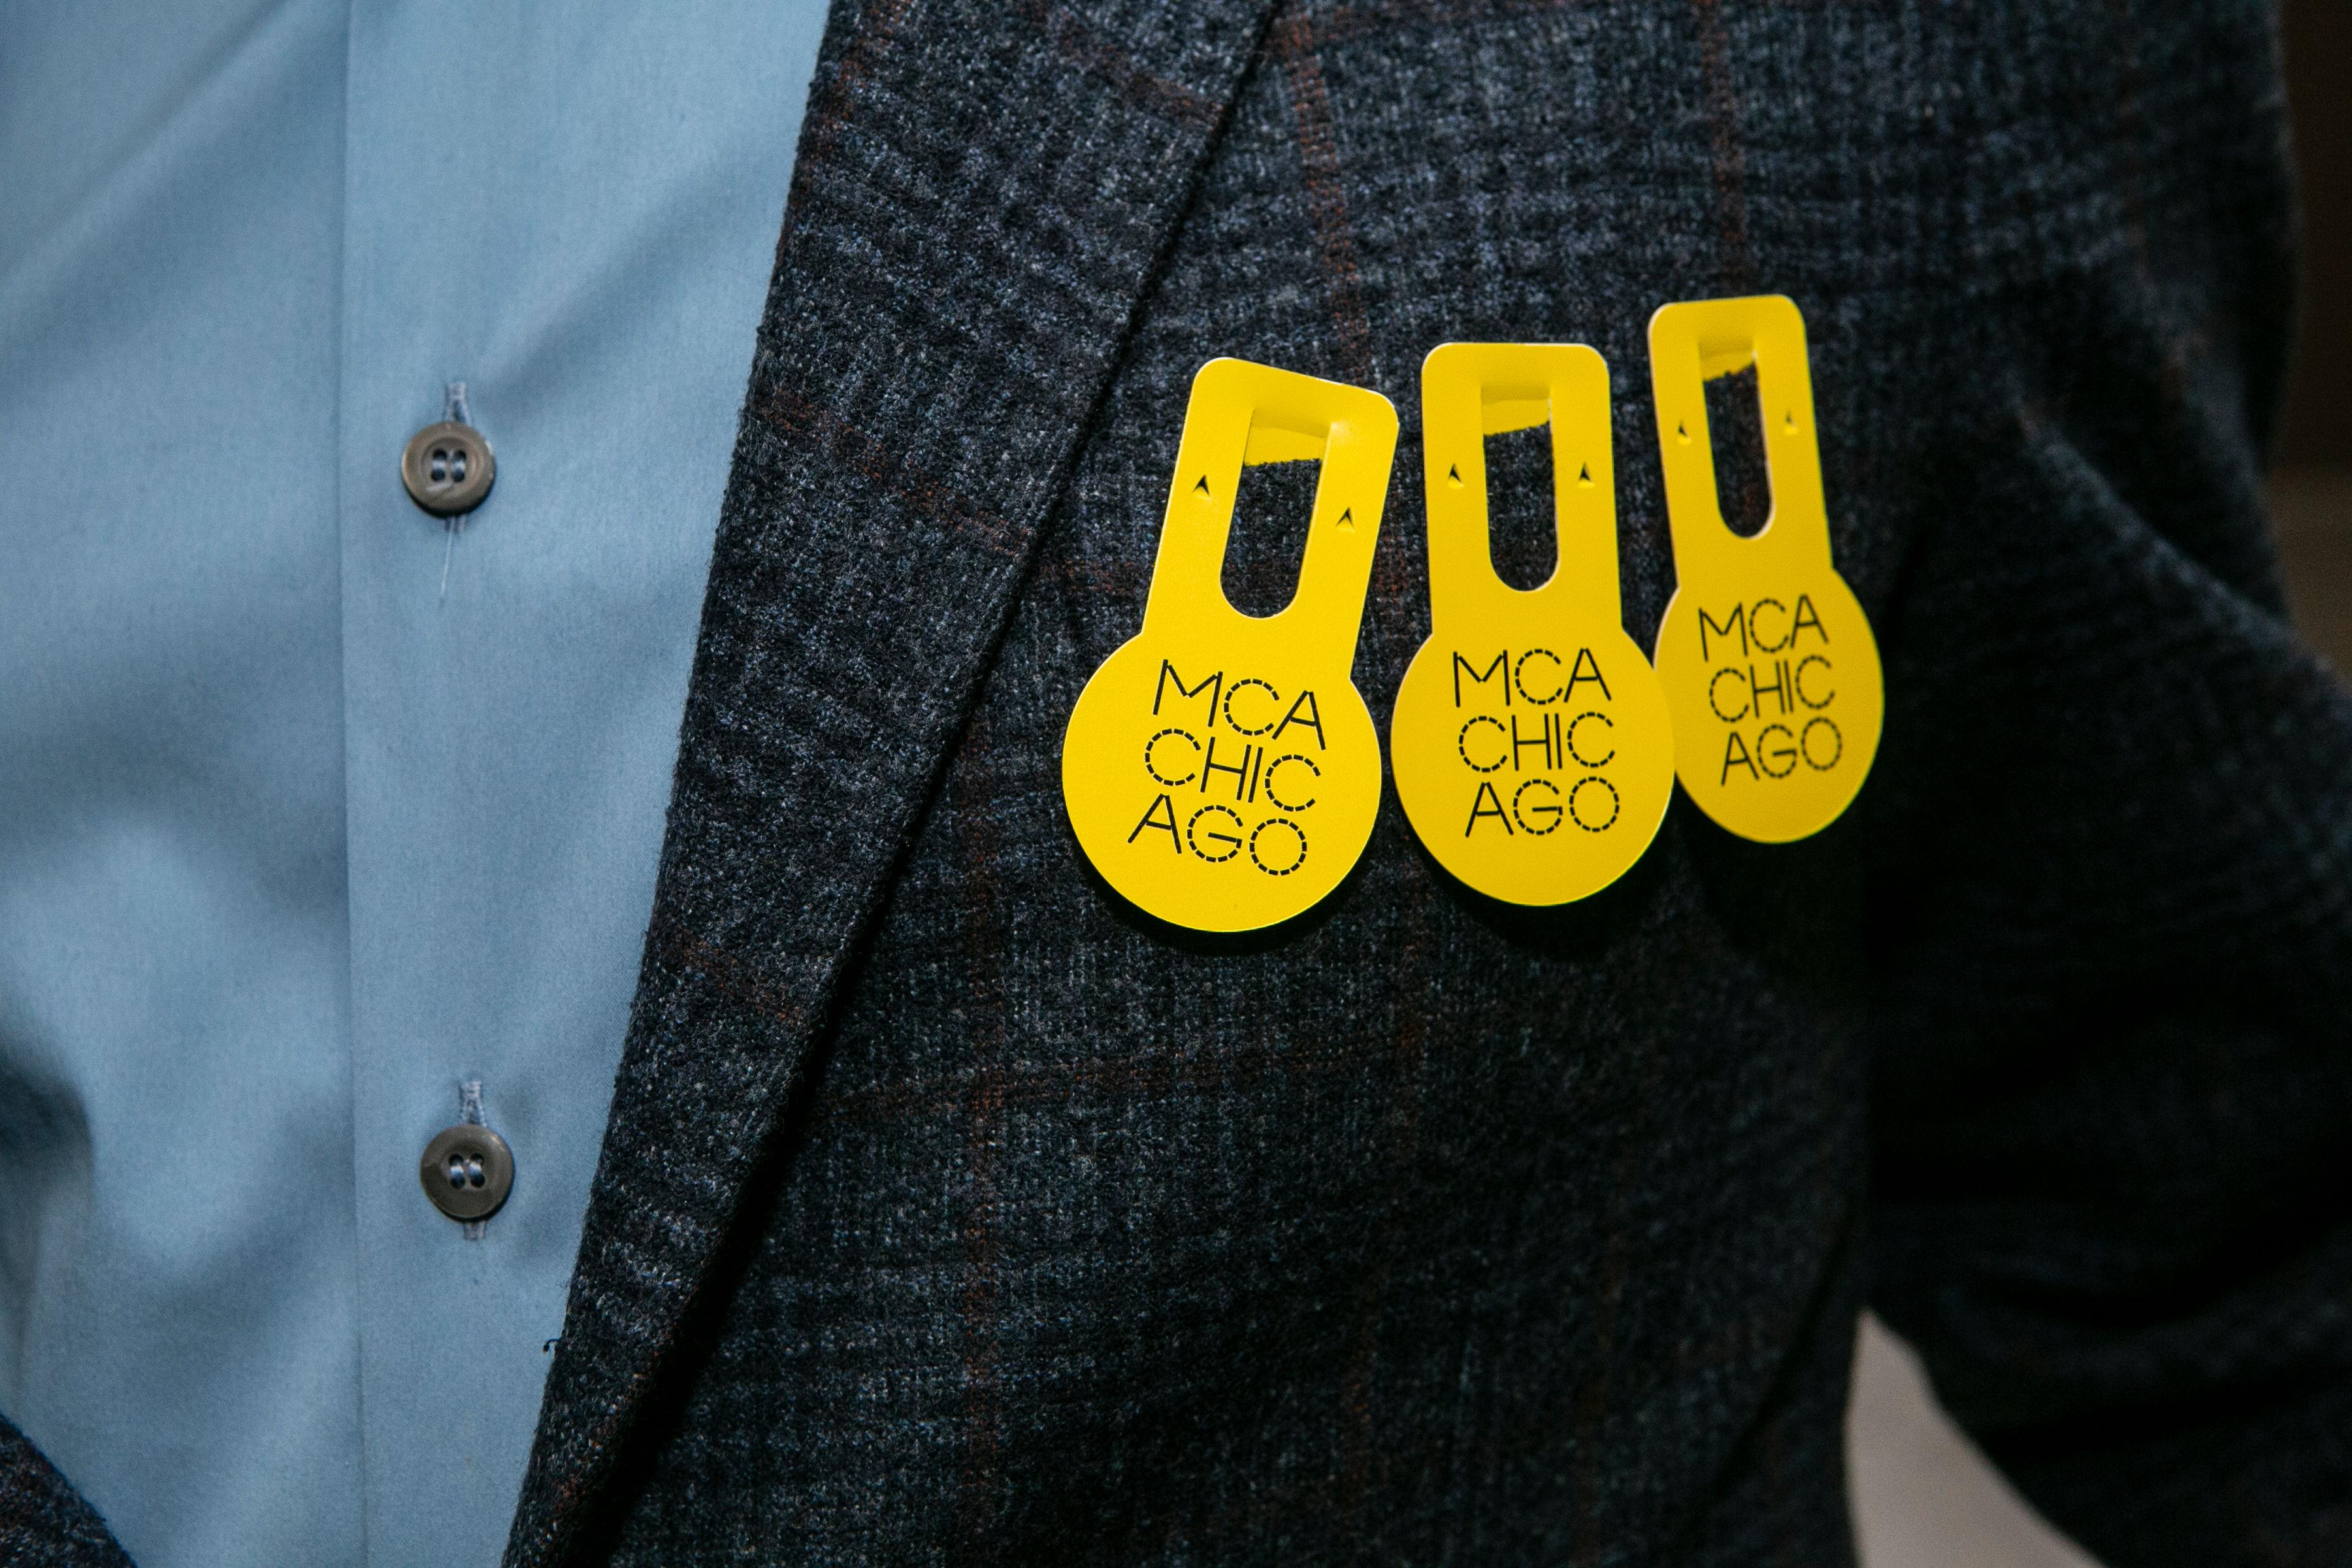 Close up of person in suit coat wearing 3 MCA Chicago admission badges